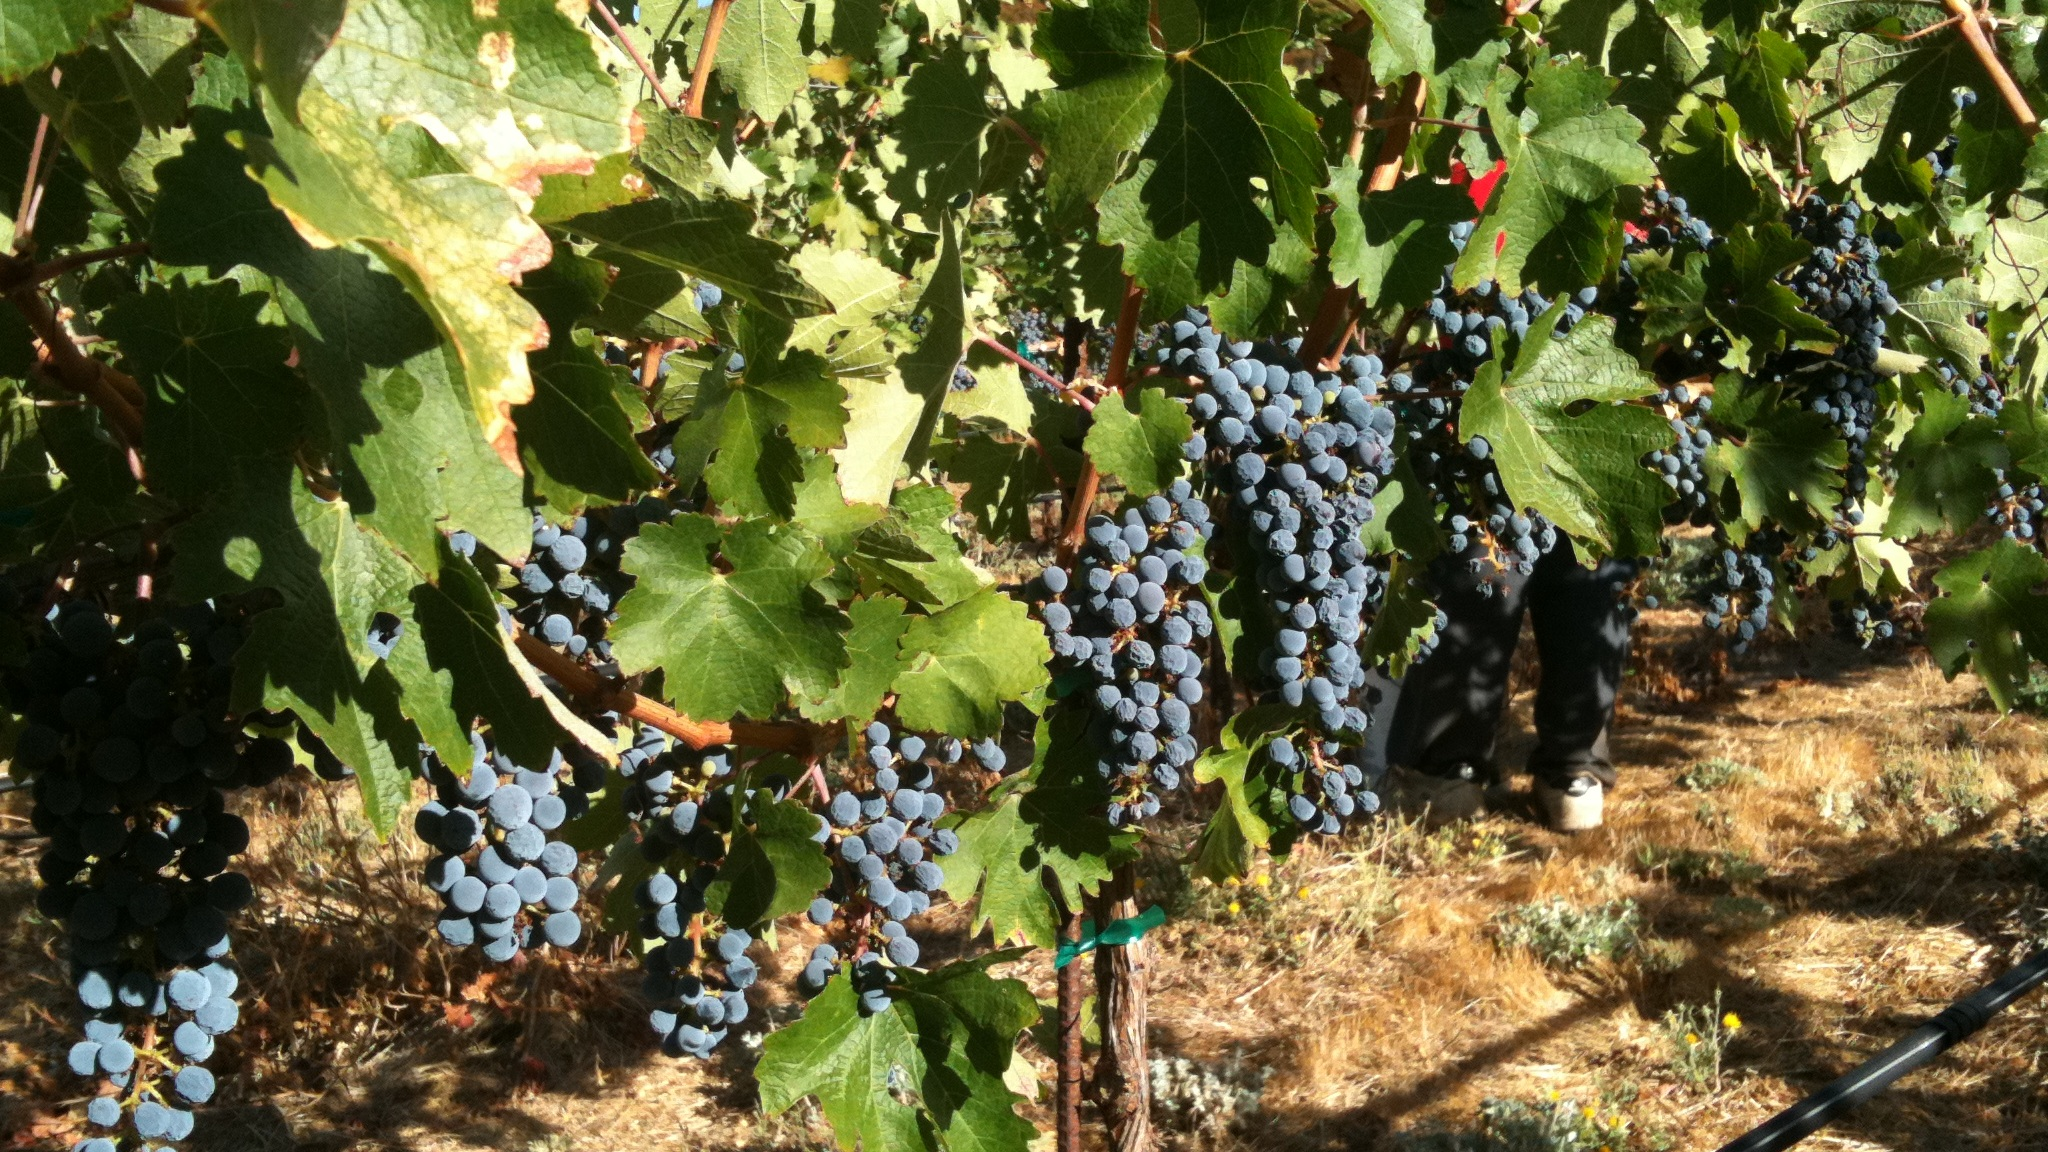 Wines made from select vineyards in Napa, Sonoma and throughout the North Coast of California